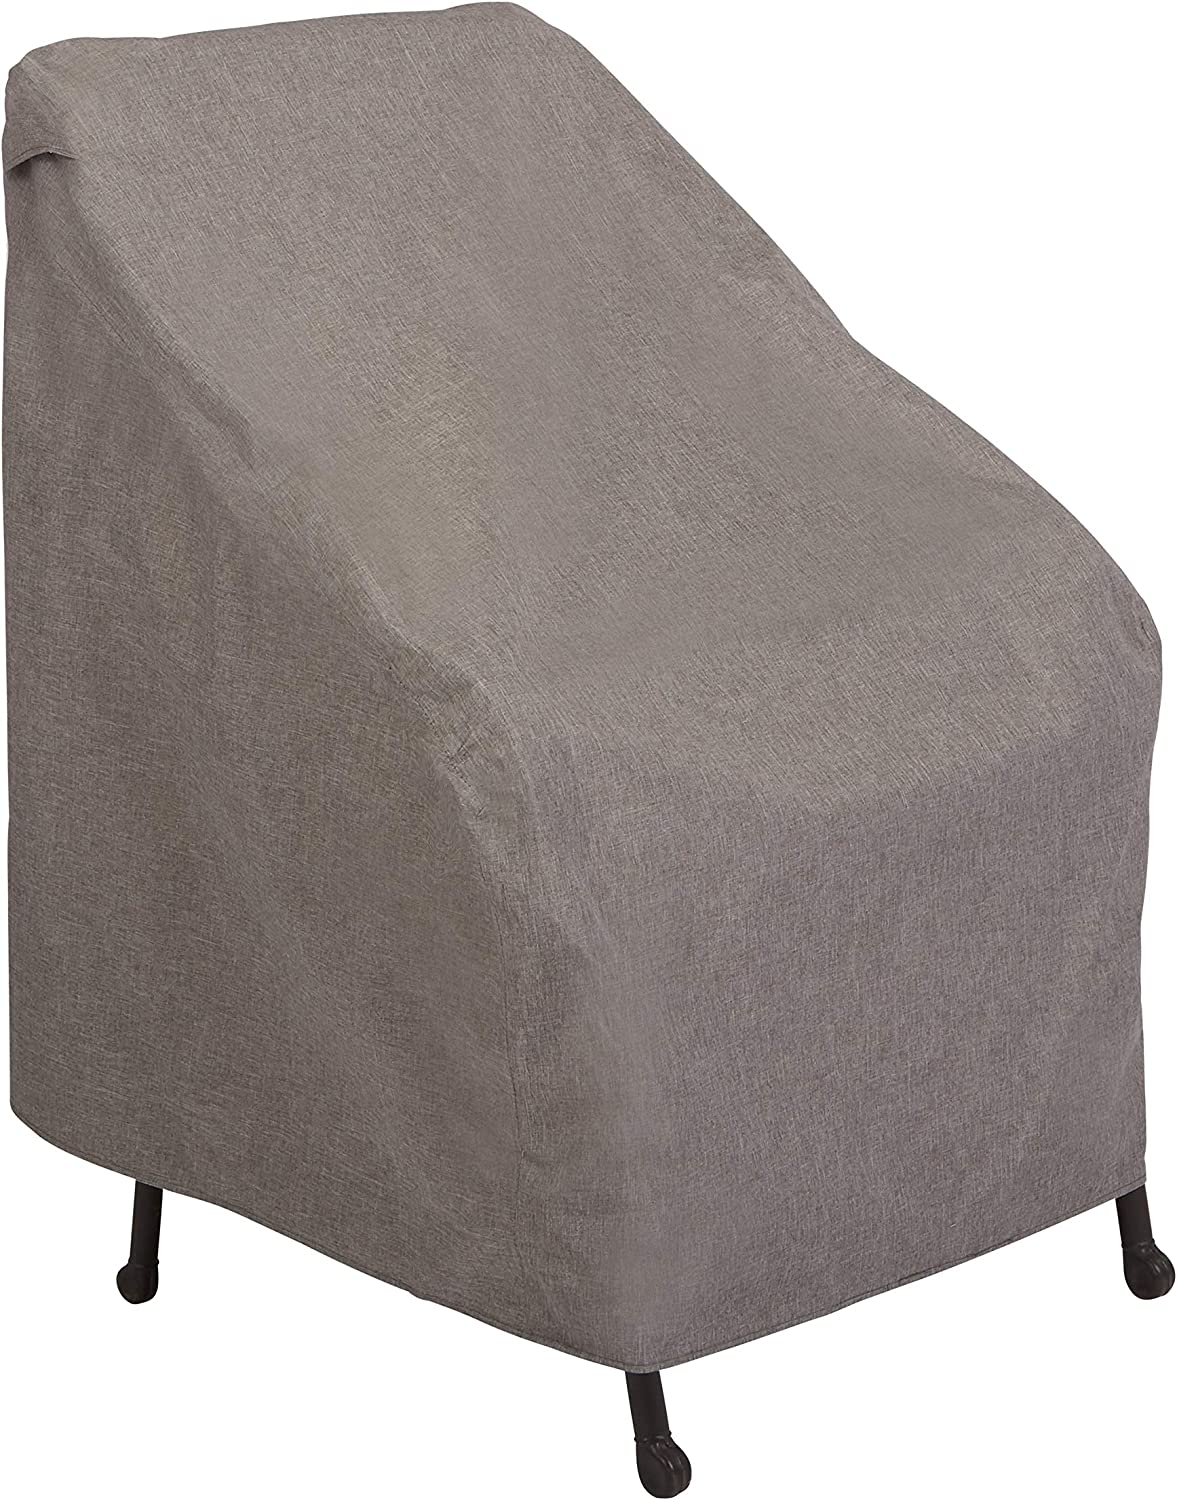 Modern Leisure Garrison Waterproof Outdoor Chair (27 W x 34 D x 31 H inches) Heather Gray, Model 3004 Patio Furniture Cover